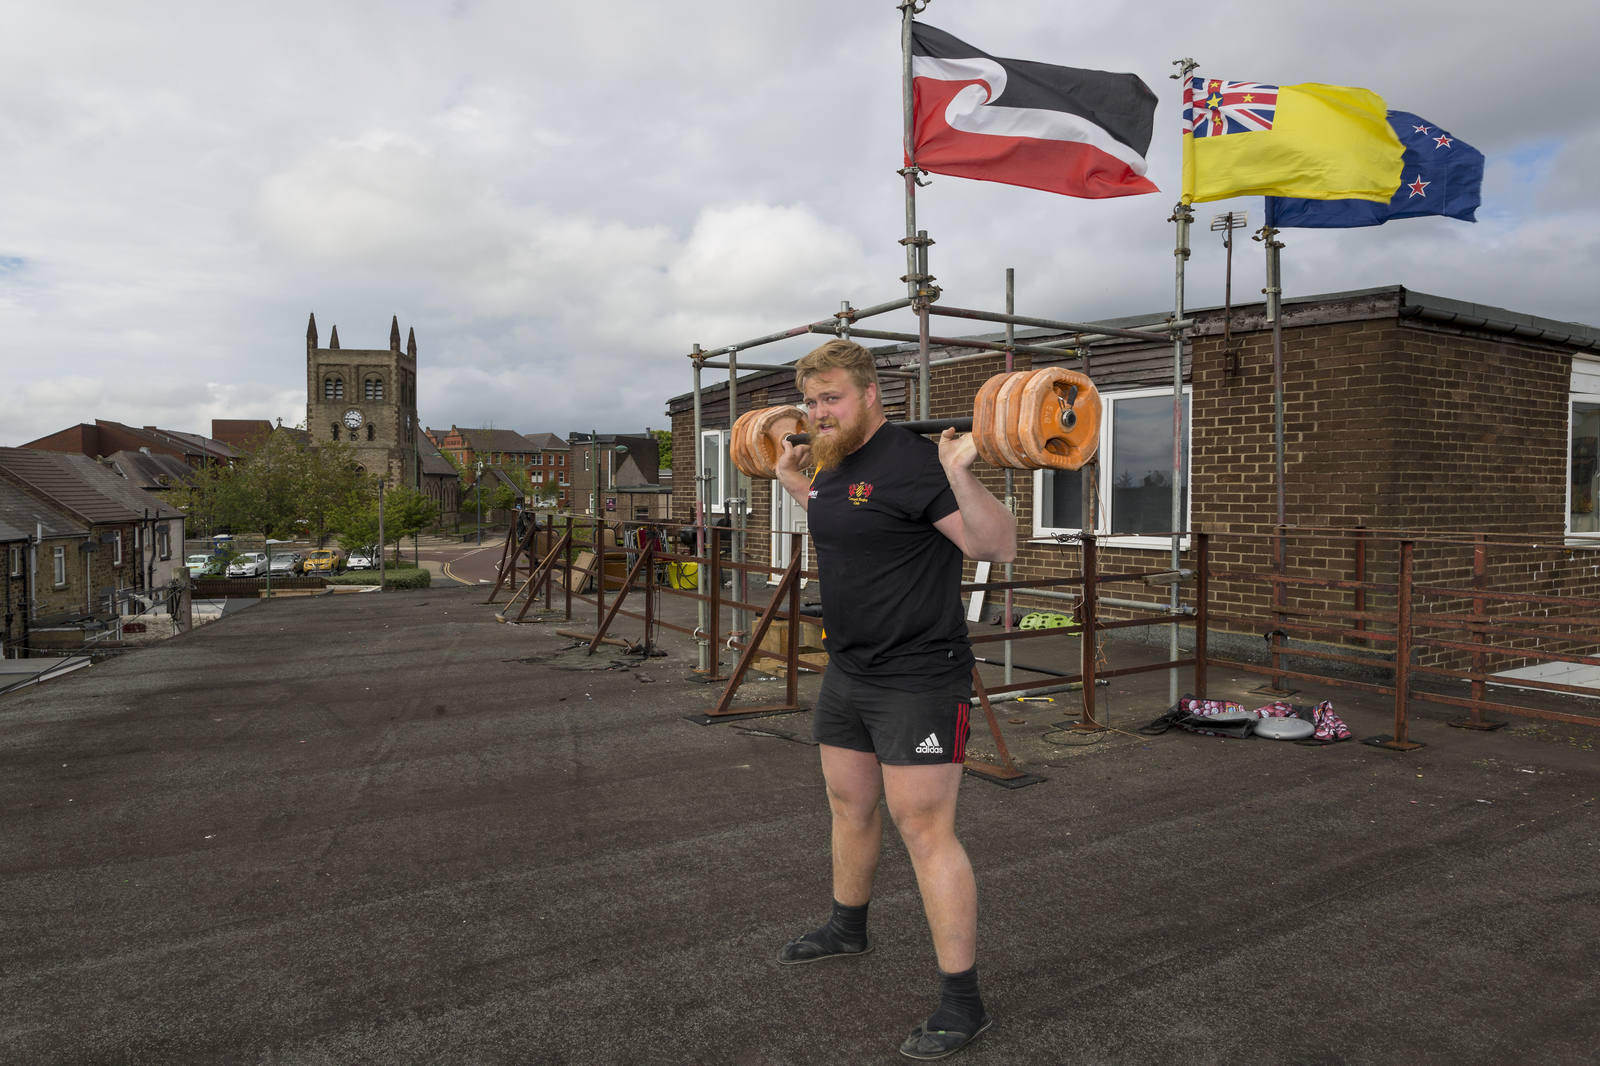 19 May 2020: Graison Dale, New Zealand player, training on the roof of the Demi Club, Consett